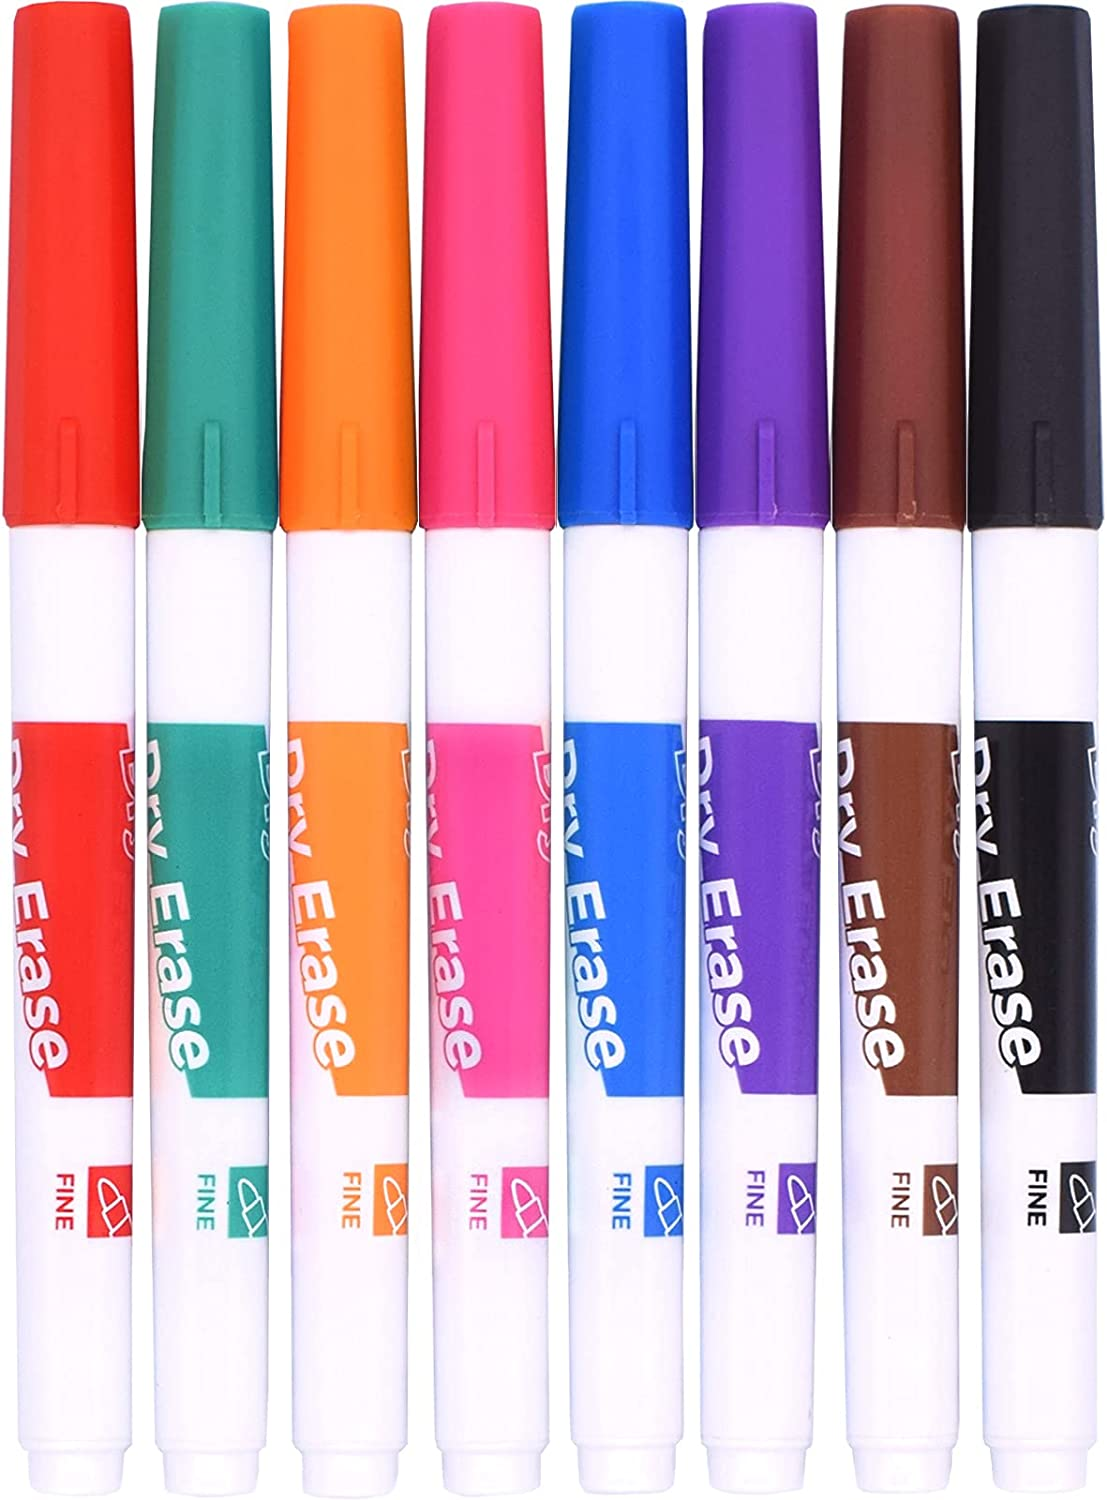 TWOHANDS Dry Erase Markers Low Odor Tip Fine Complete Free Shipping Whi Very popular Assorted Colors